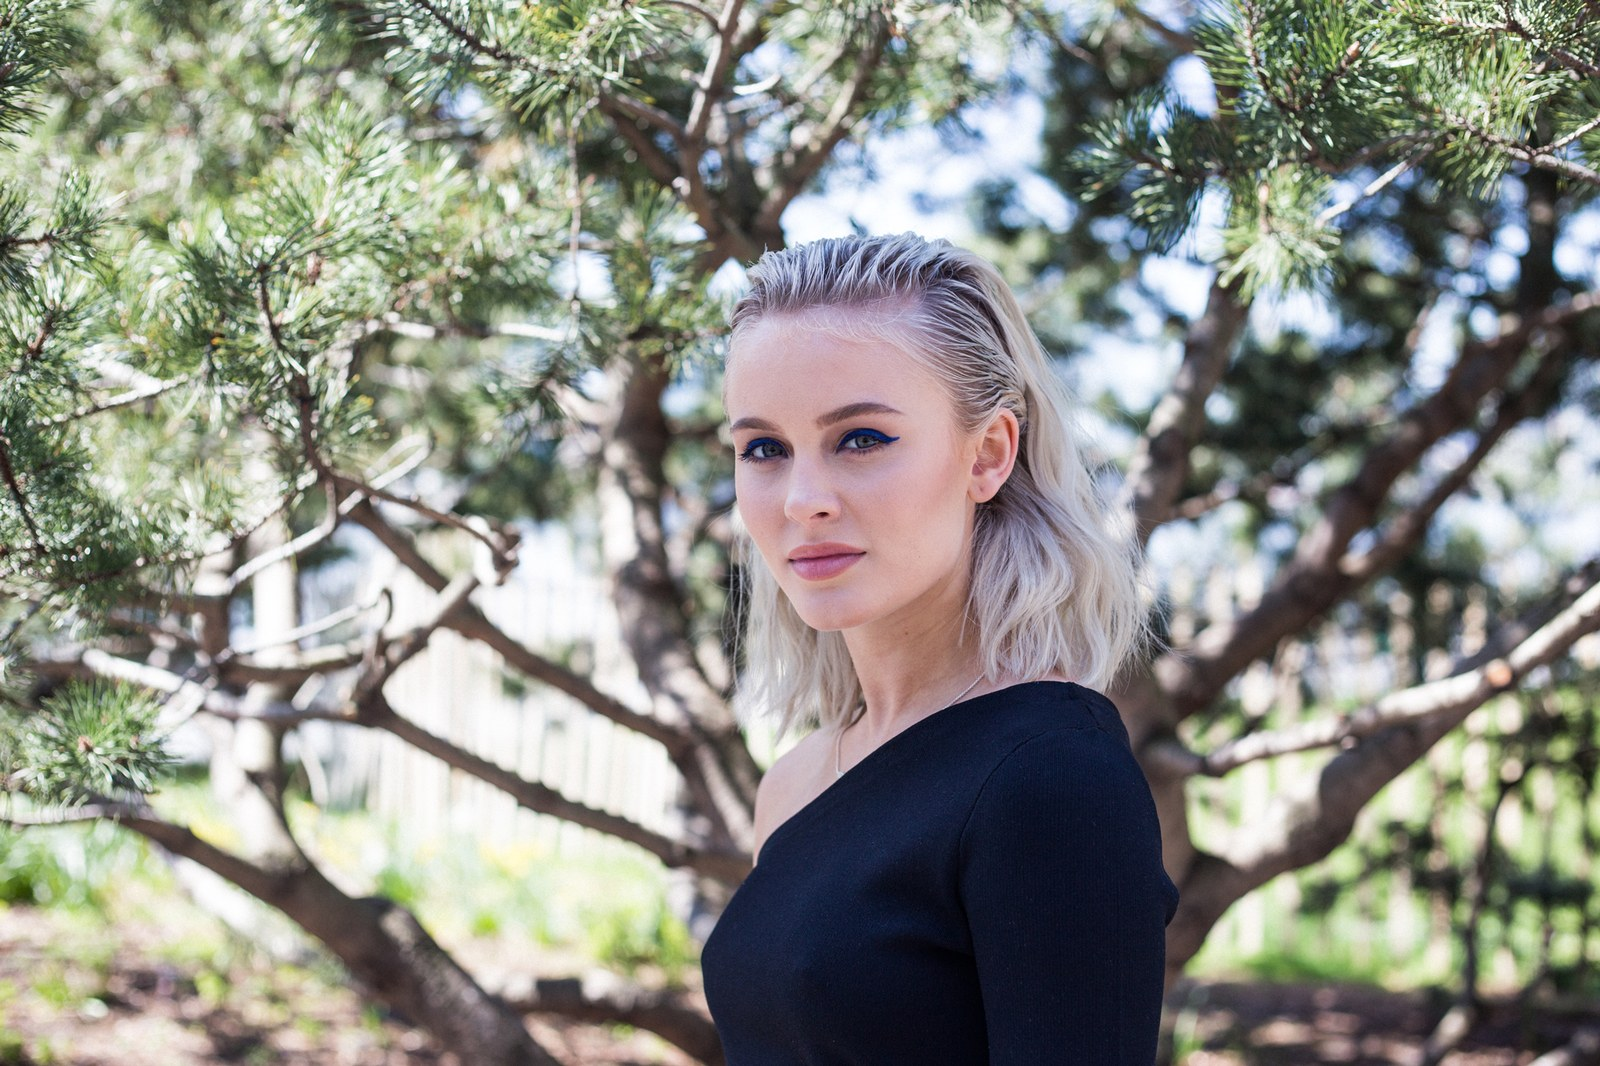 Zara Larsson Outdoors - Zara Larsson Outdoors